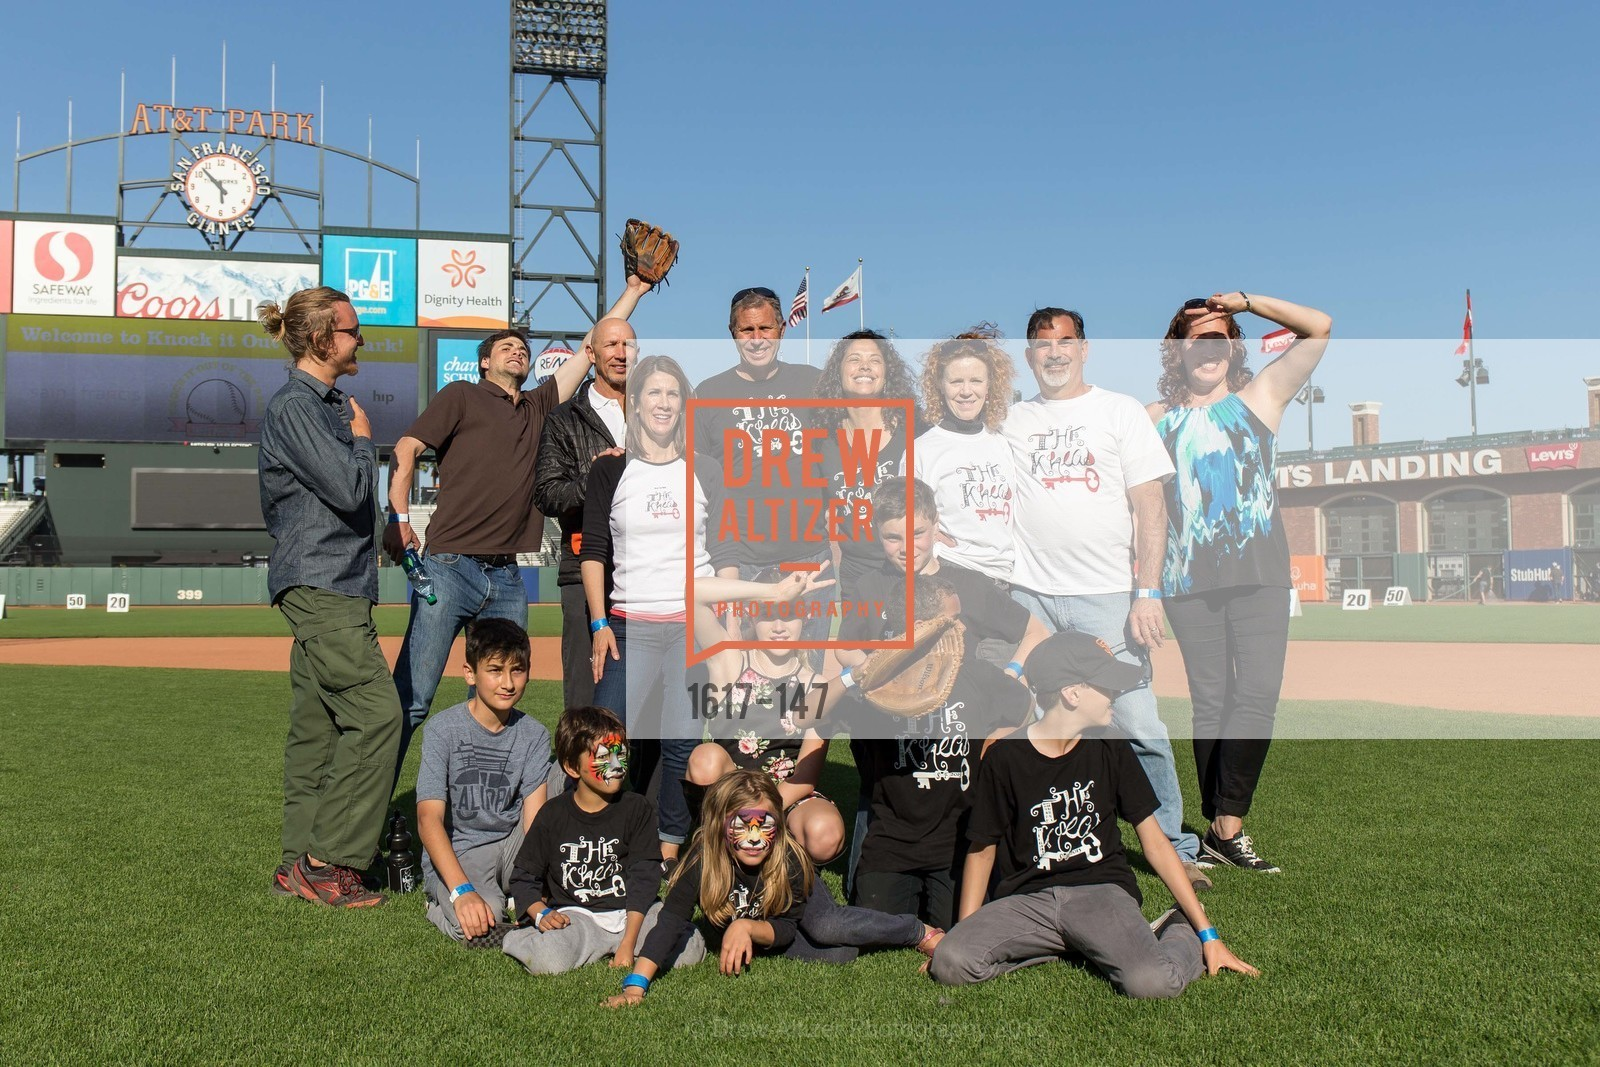 Boys And Girls Club of Tenderloin District, The Saint Francis Foundation's